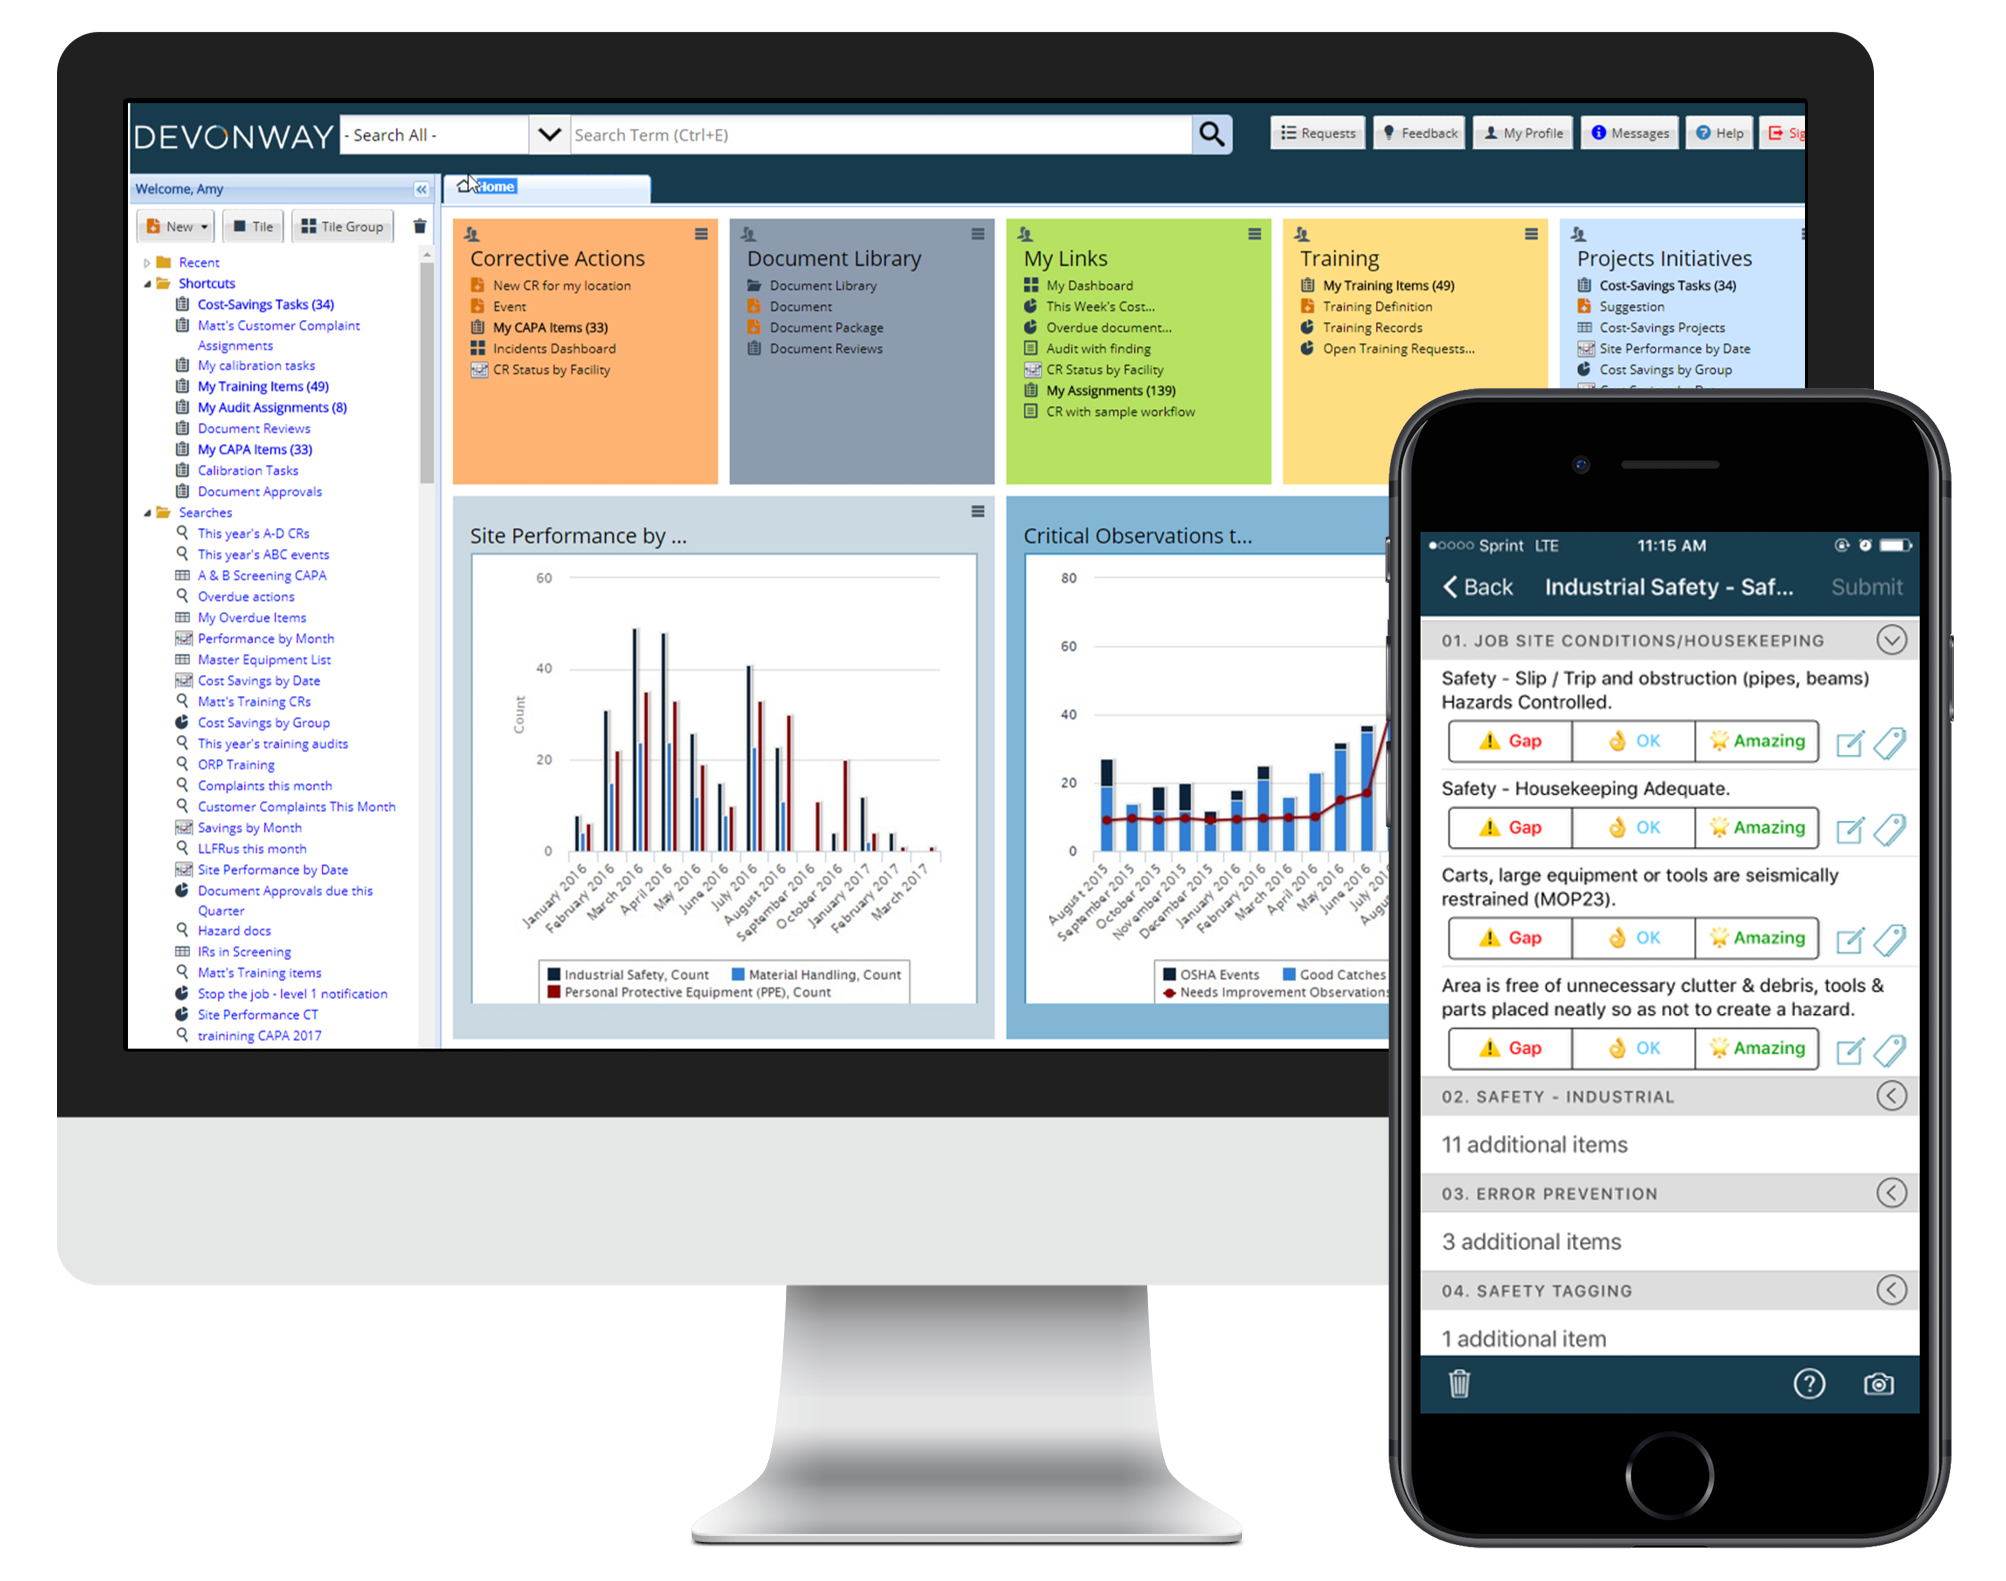 devonway dashboard and mobile